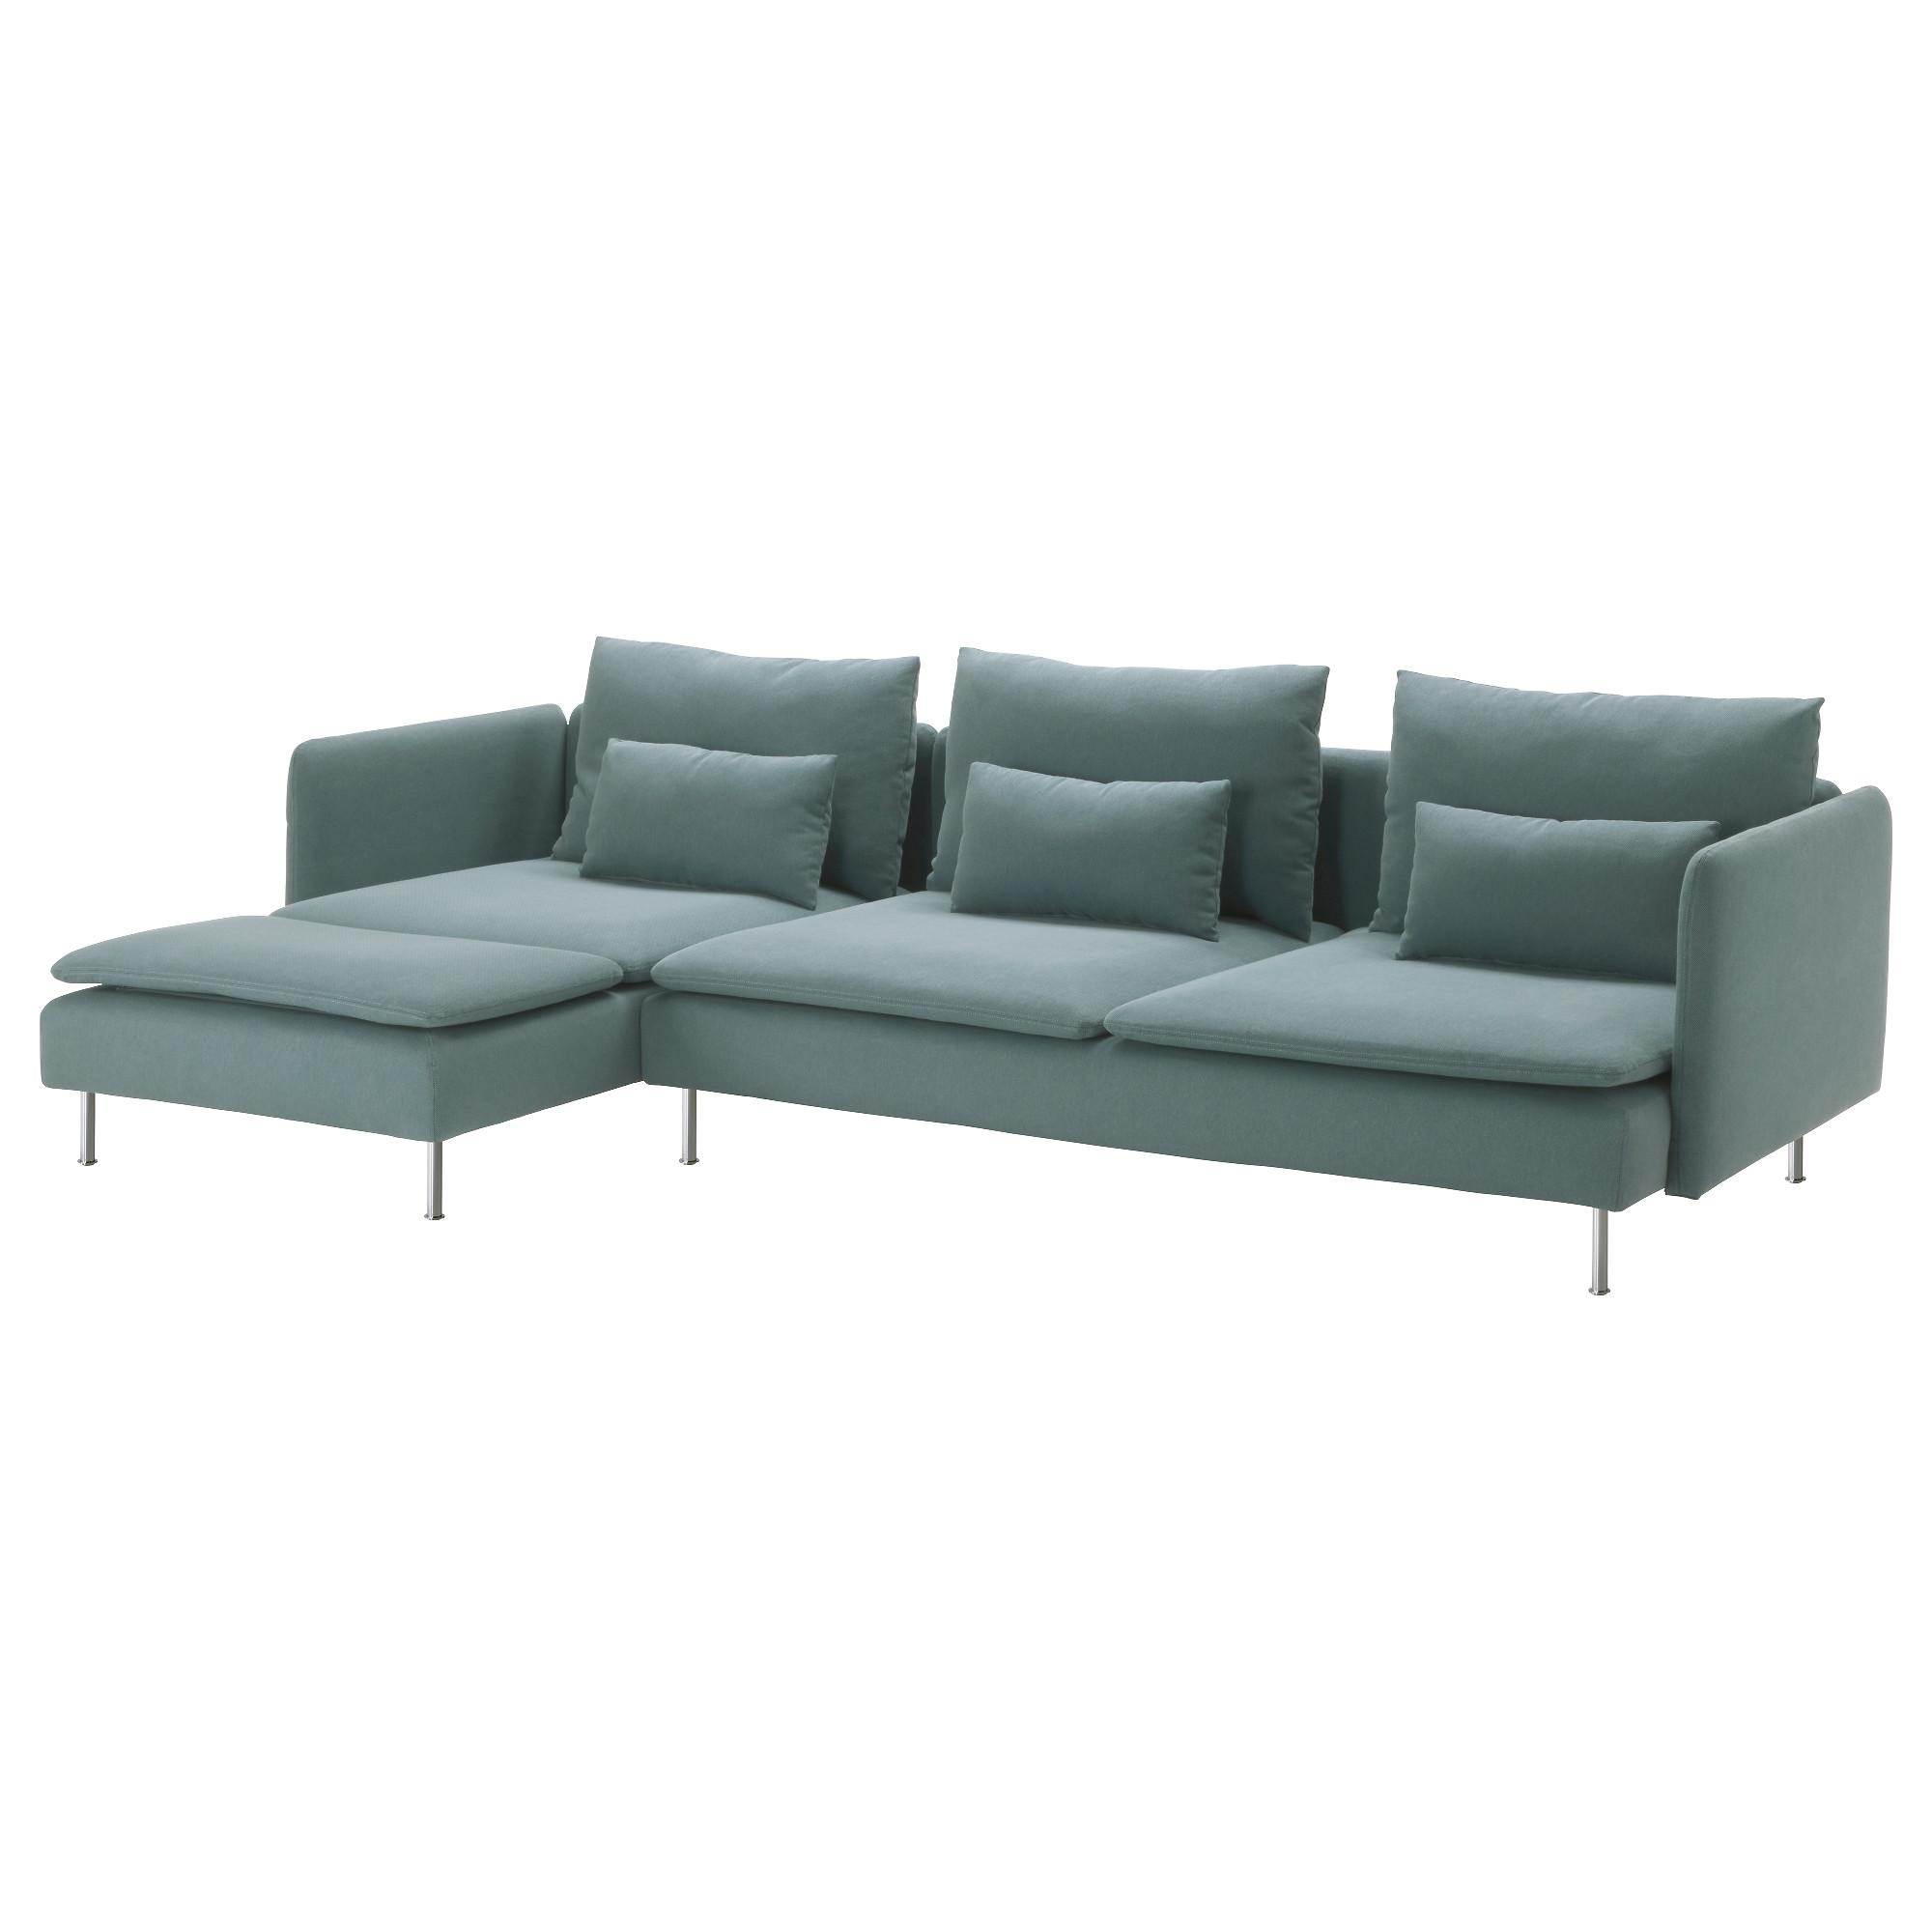 Sectional Sofas & Couches – Ikea Pertaining To Sectinal Sofas (Image 13 of 20)